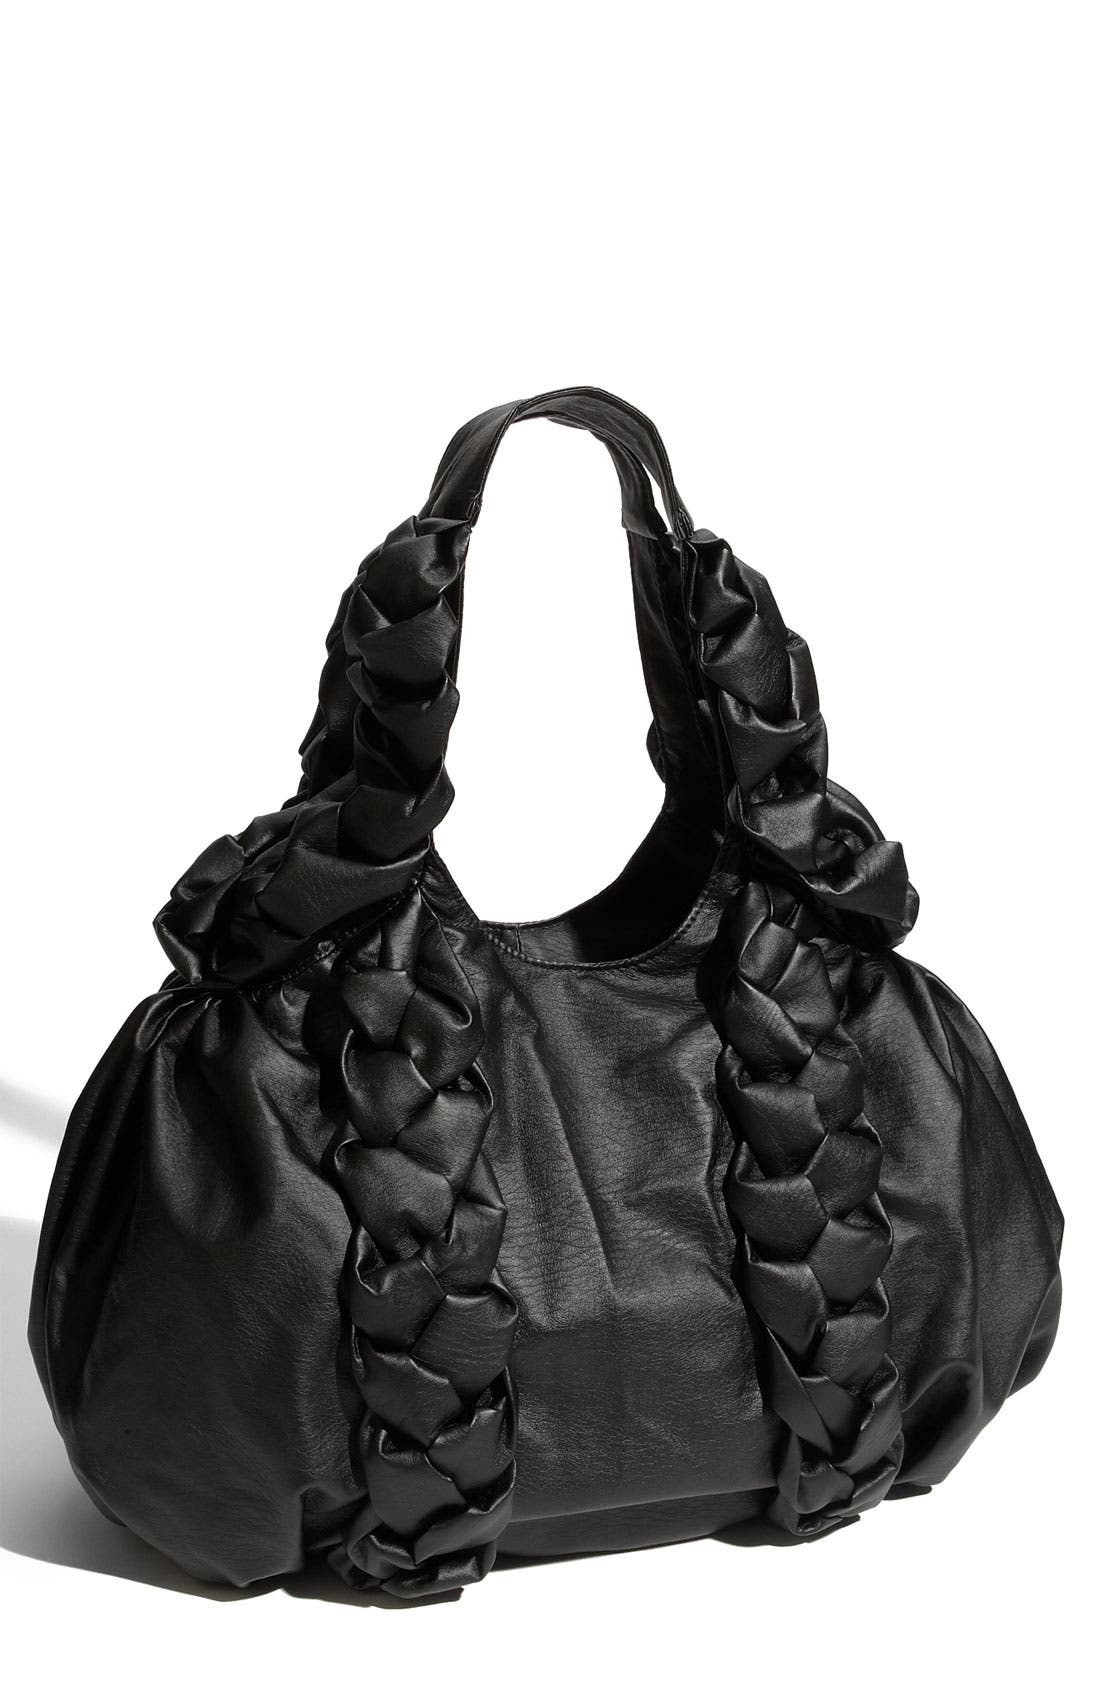 Alternate Image 1 Selected - Melie Bianco Braided Faux Leather Hobo